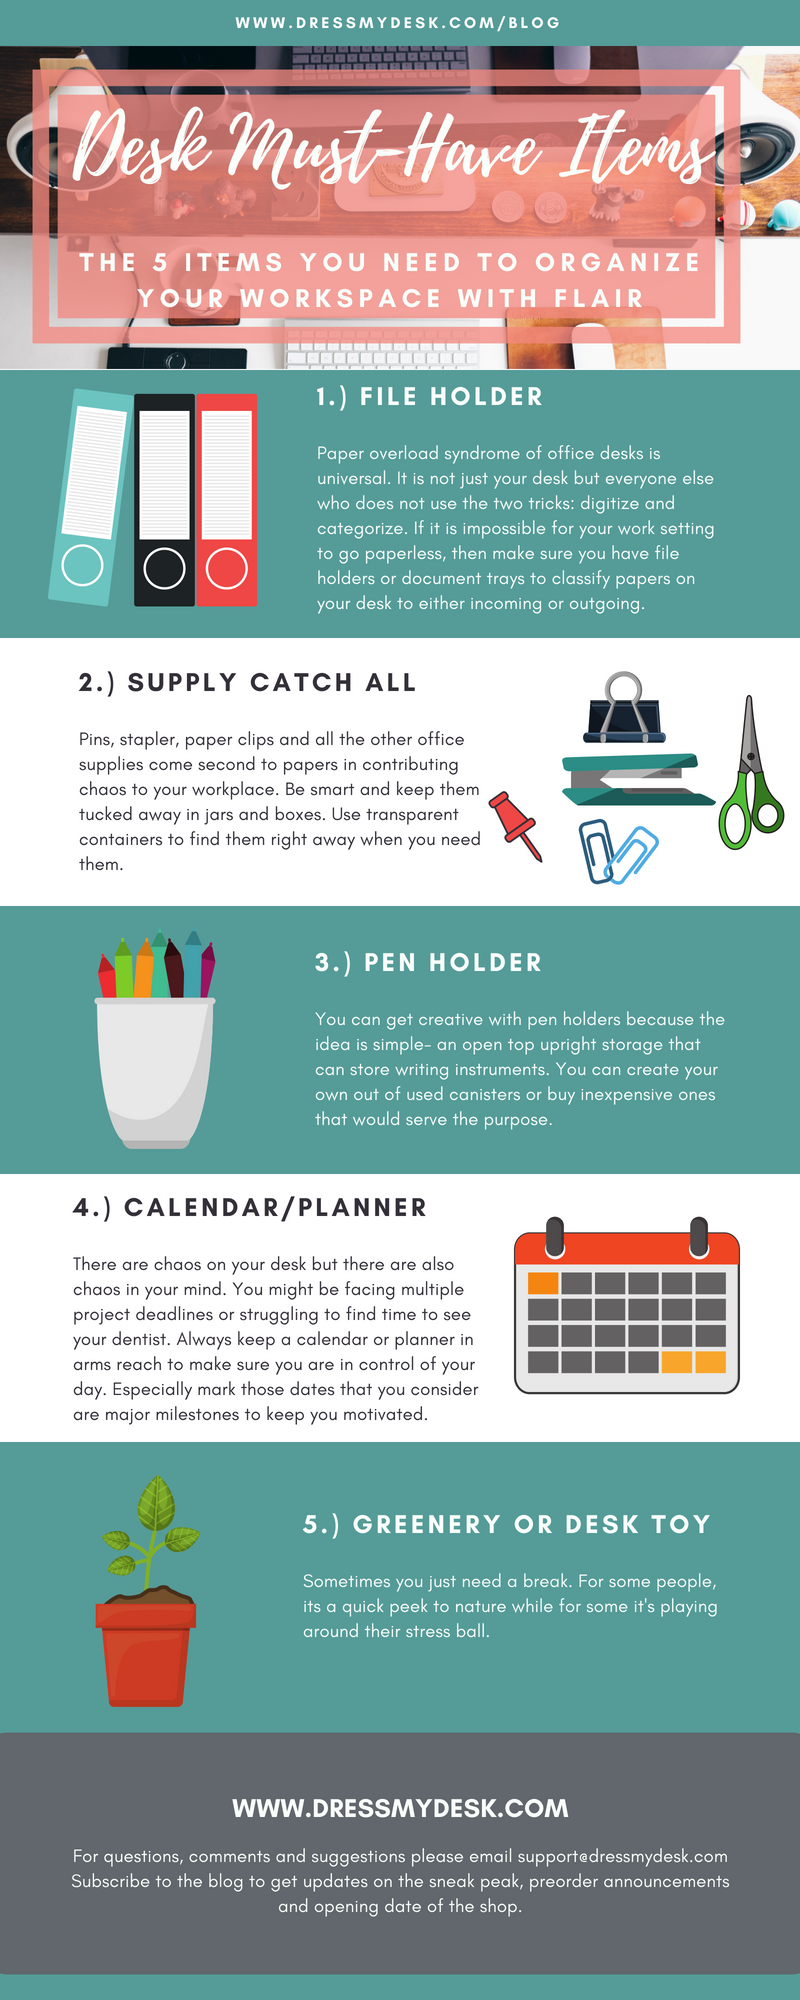 When organizing your desks, make sure you have these five items always. It includes file holder, office supply containers, pen holders, planner and desk toys.